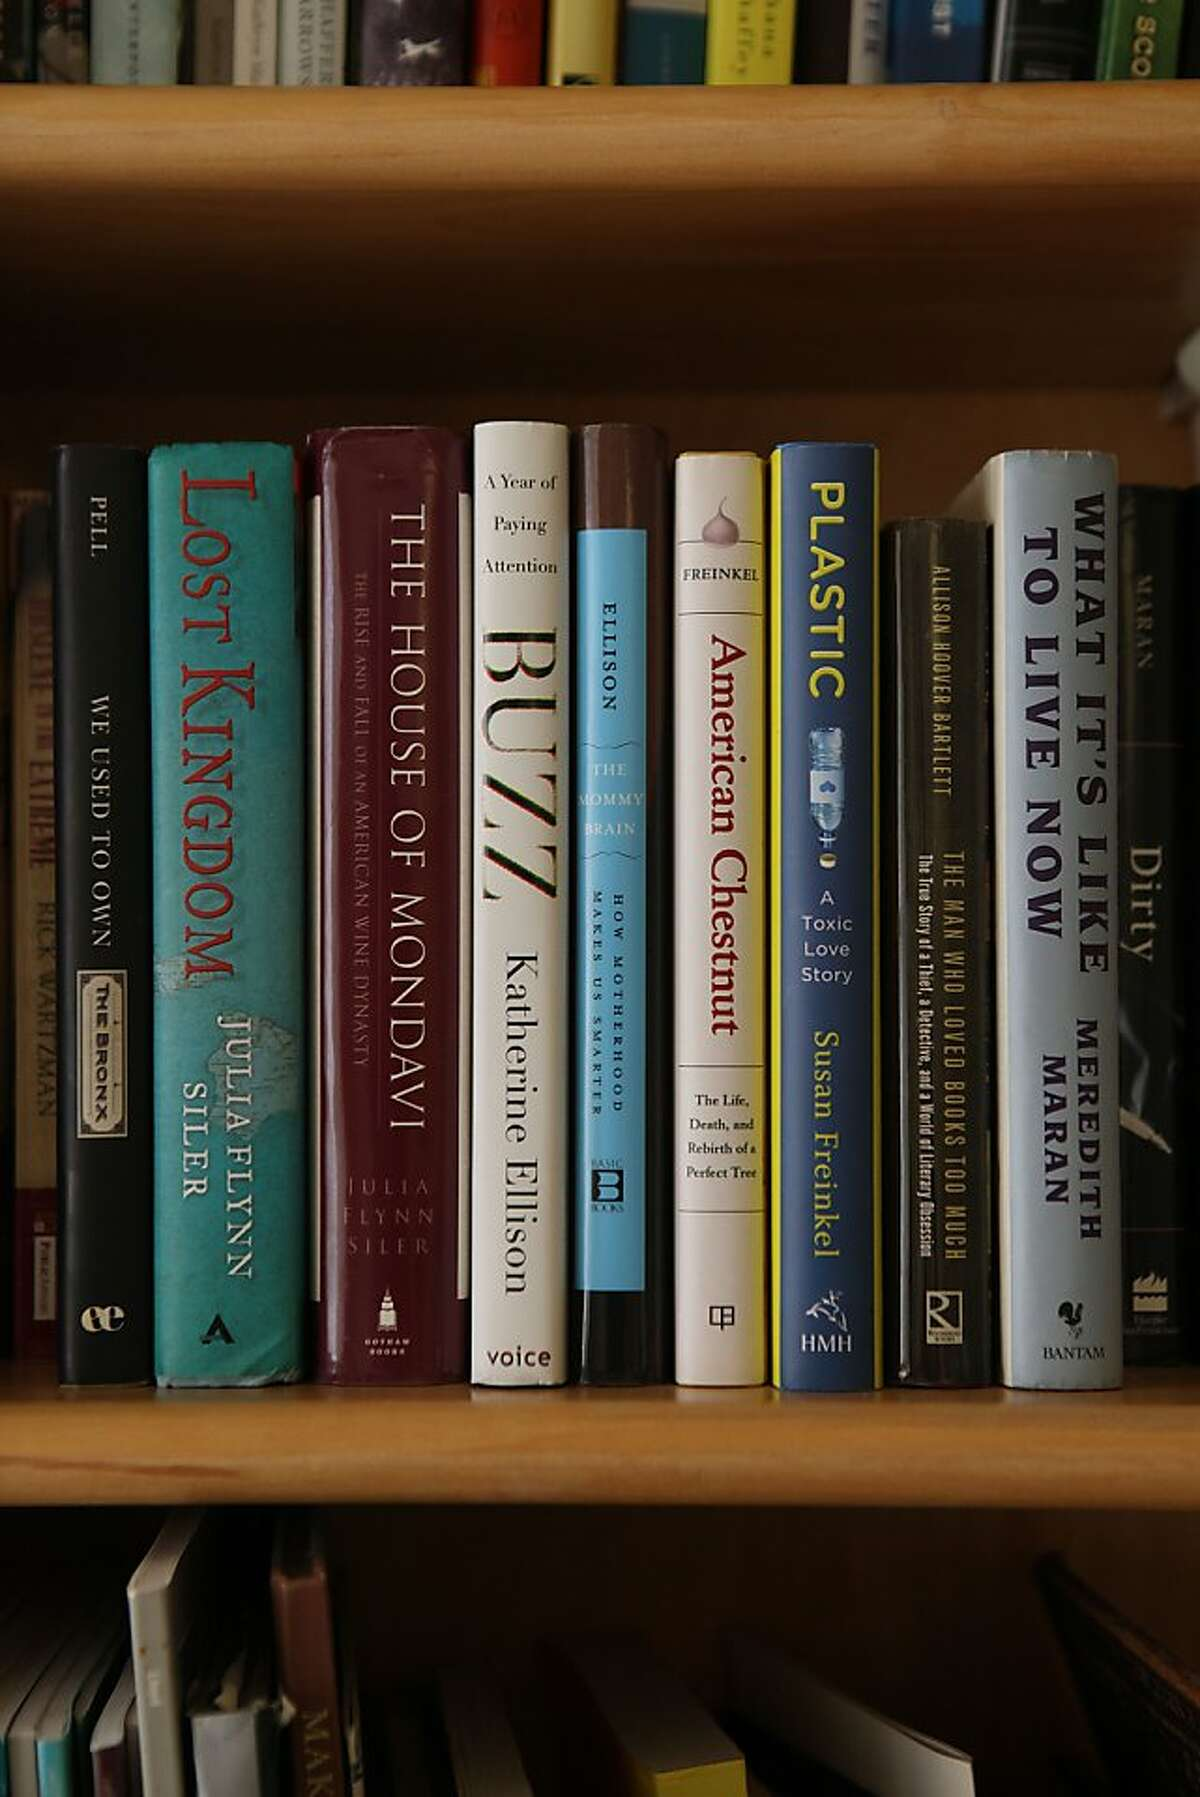 Berkleyside editor Frances Dinkelspiel shows a shelf of books written by friends in Berkeley, Calif., on Wednesday, August 8, 2012.